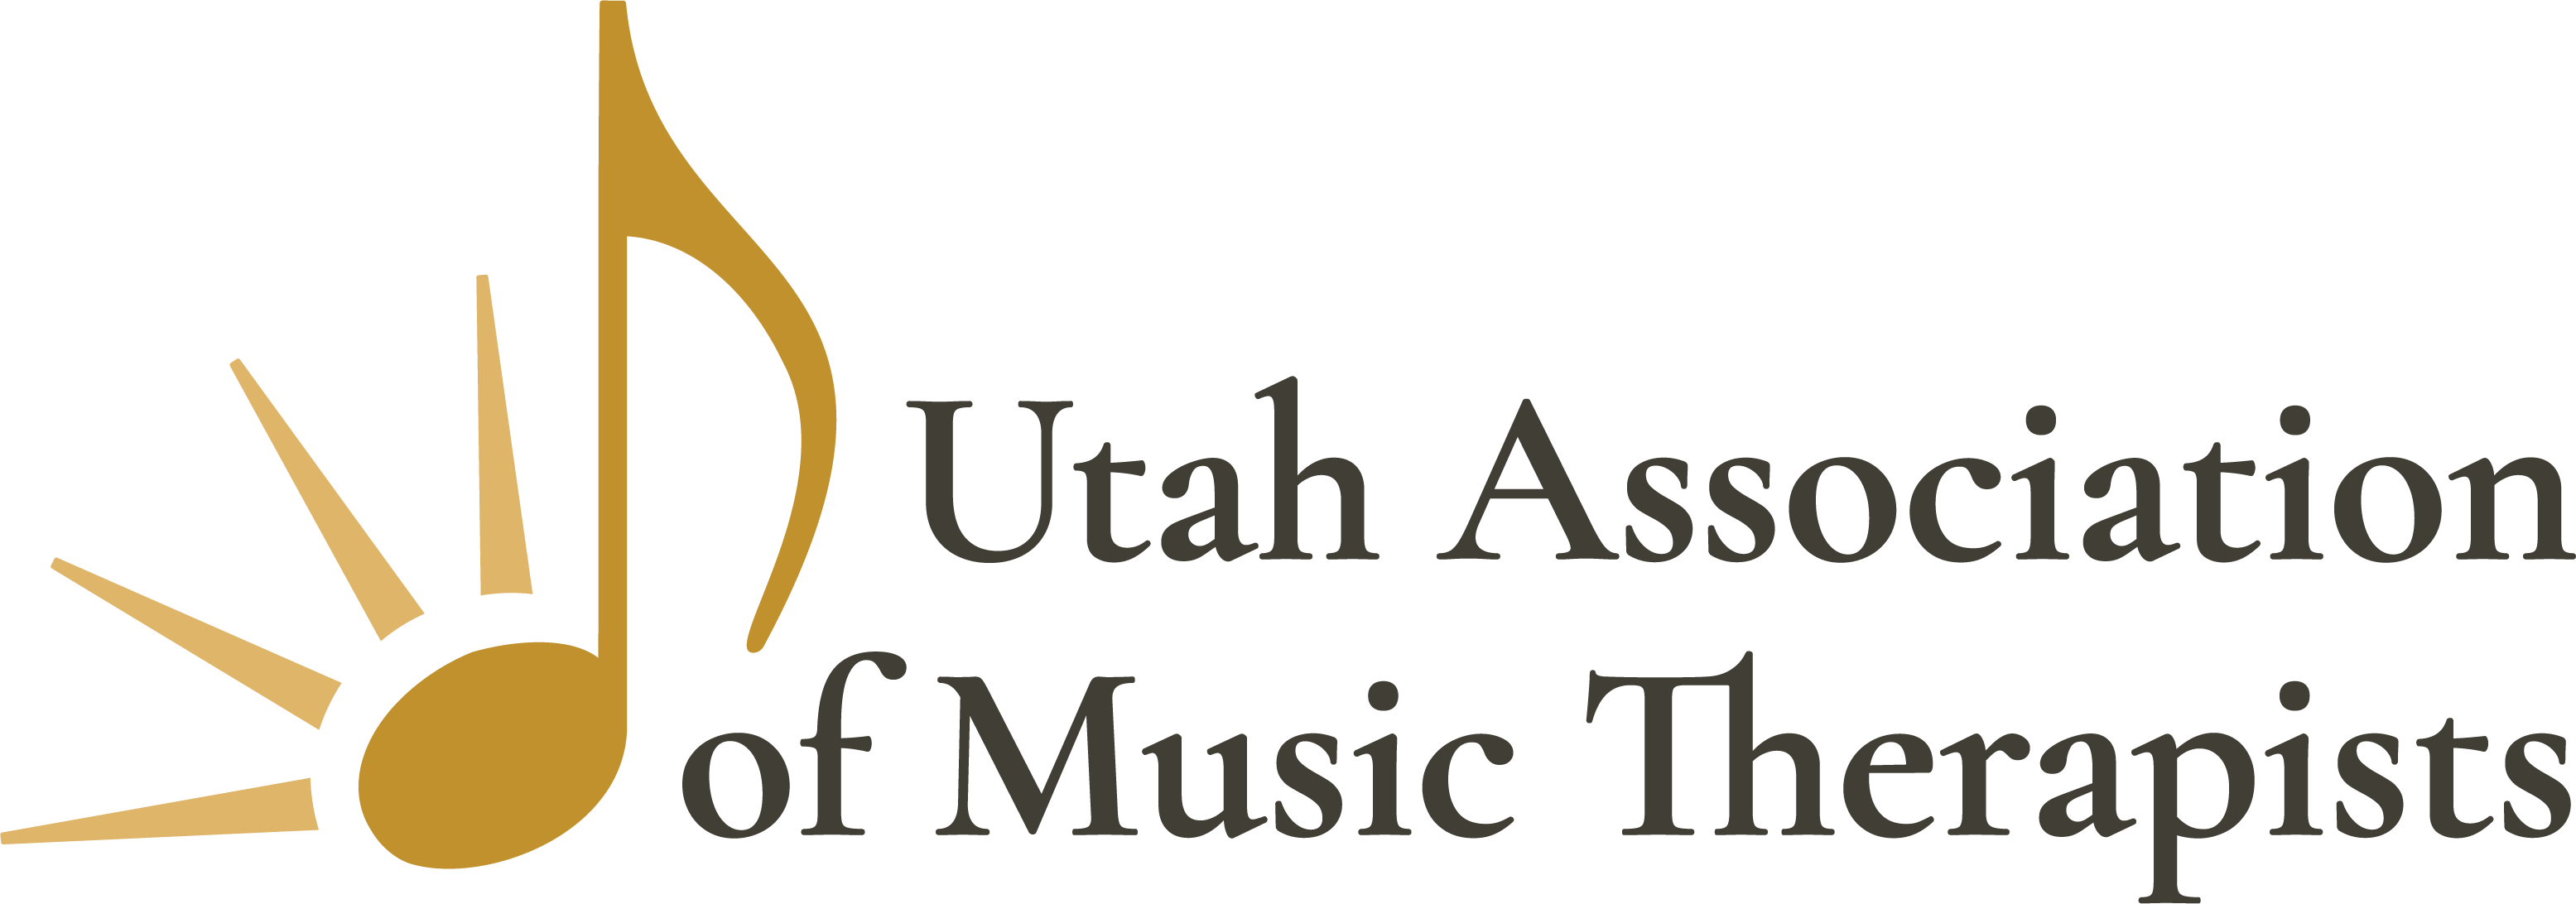 Utah Association of Music Therapists